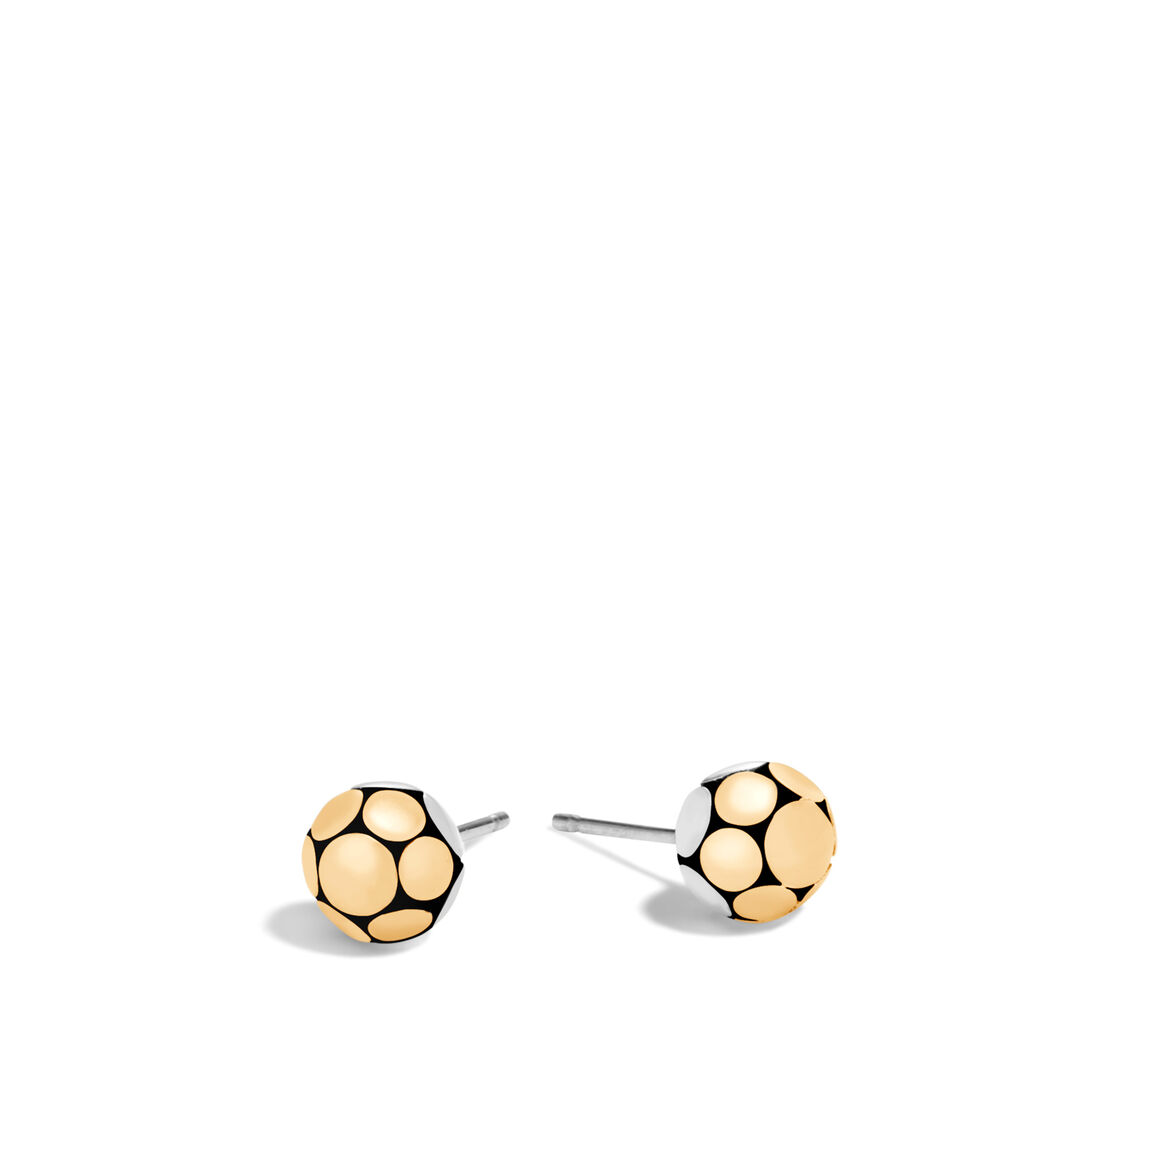 Dot Stud Earring in Silver and Hammered 18K Gold